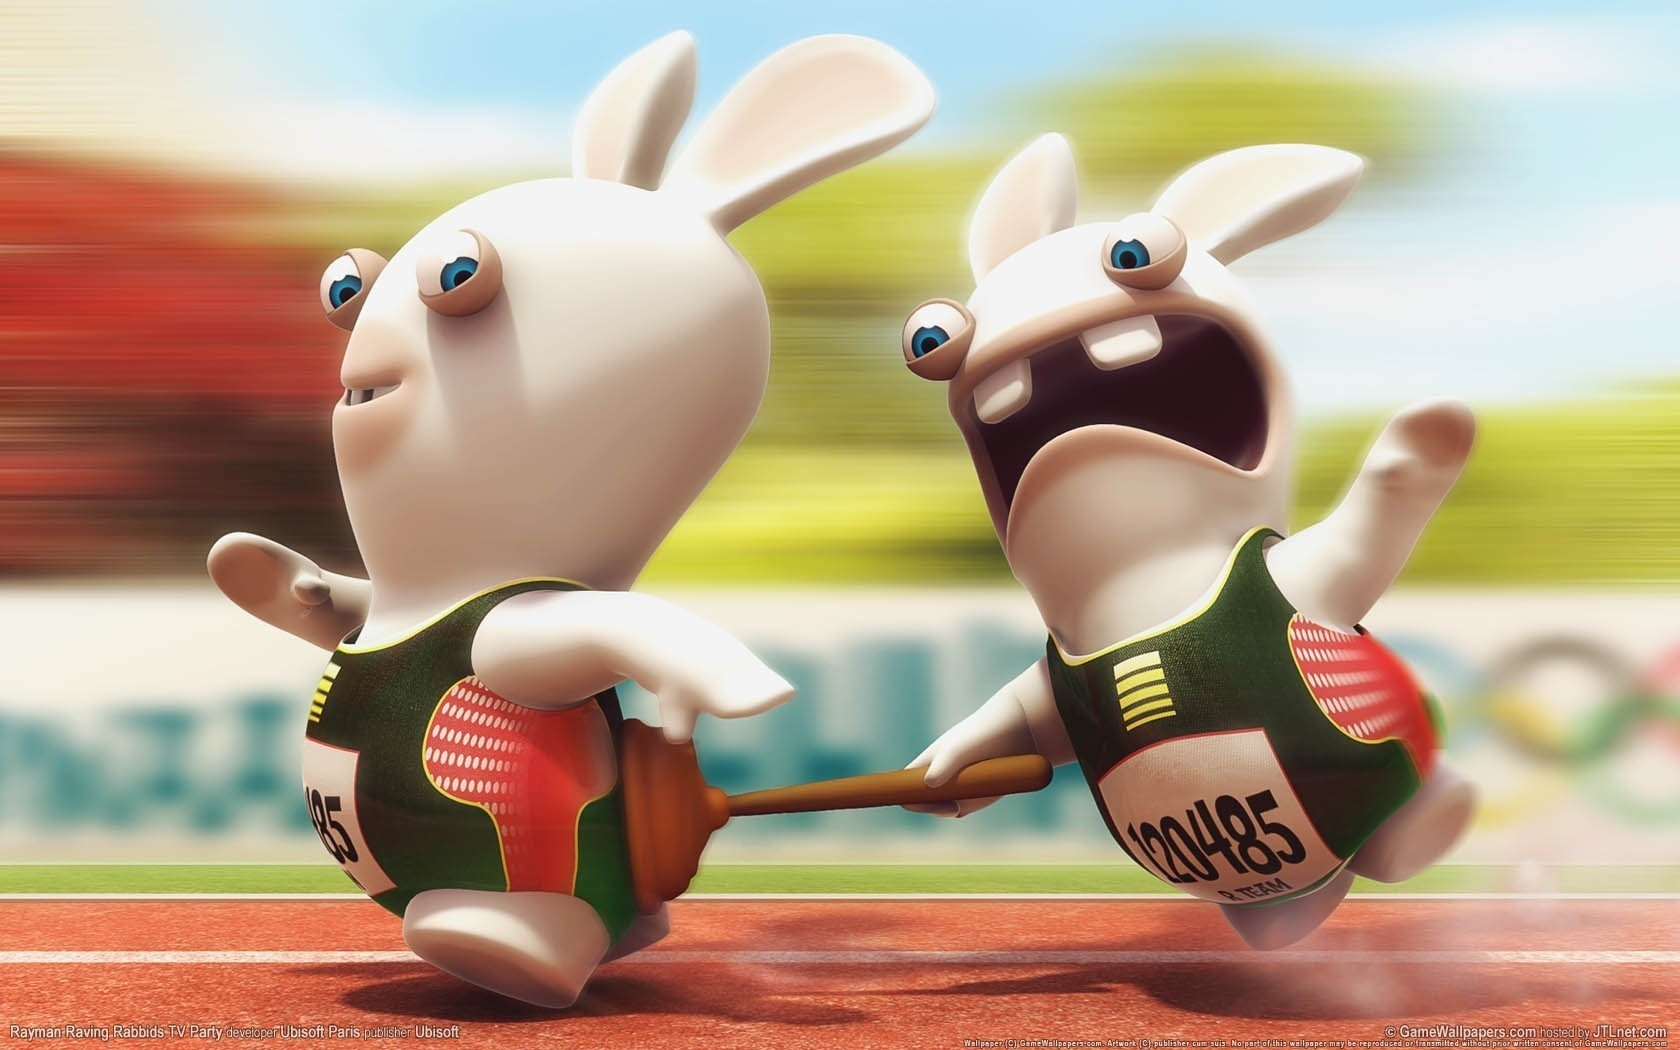 cartoons Raving Rabbids HD Wallpaper